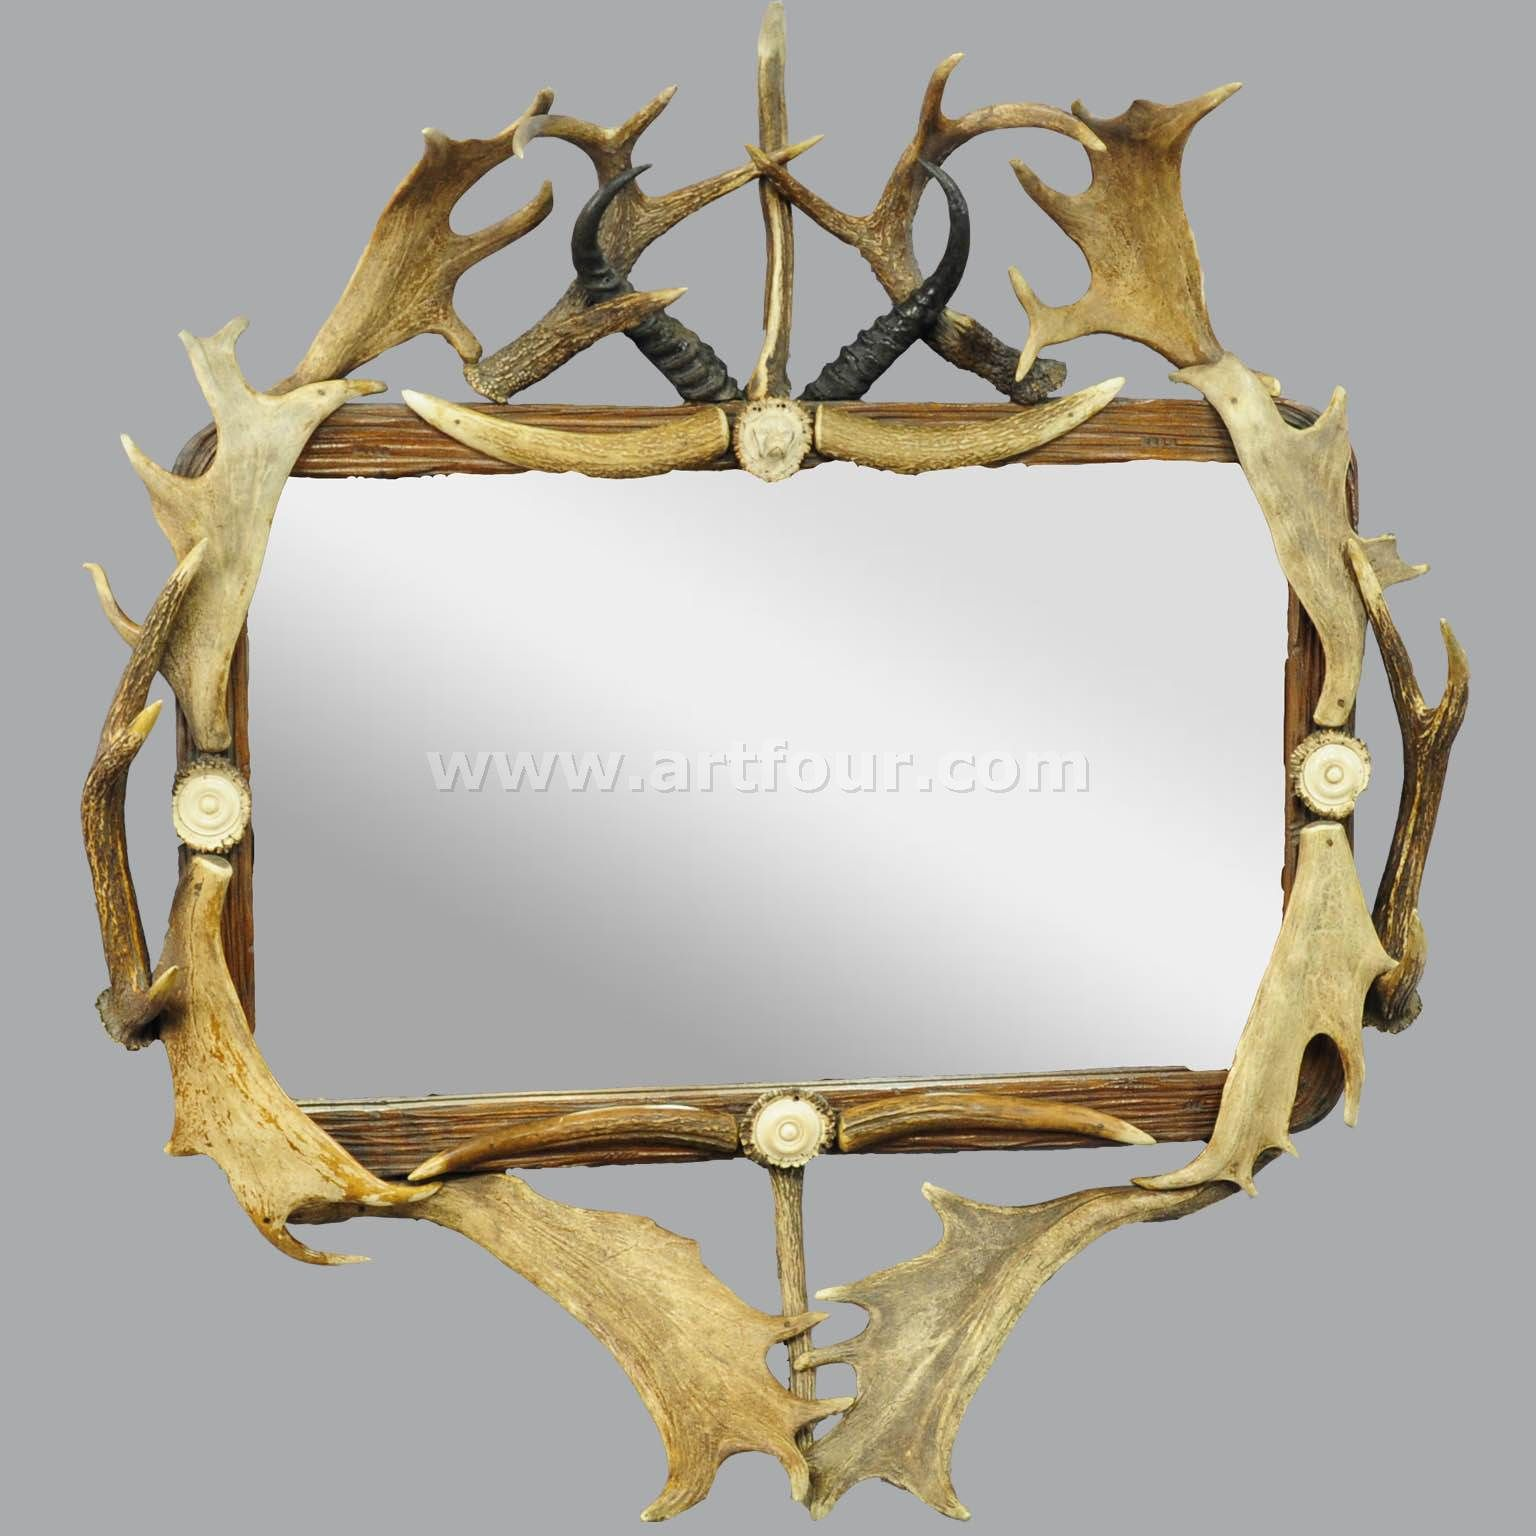 antique antler frame with rustic antler decorations and mirror ...